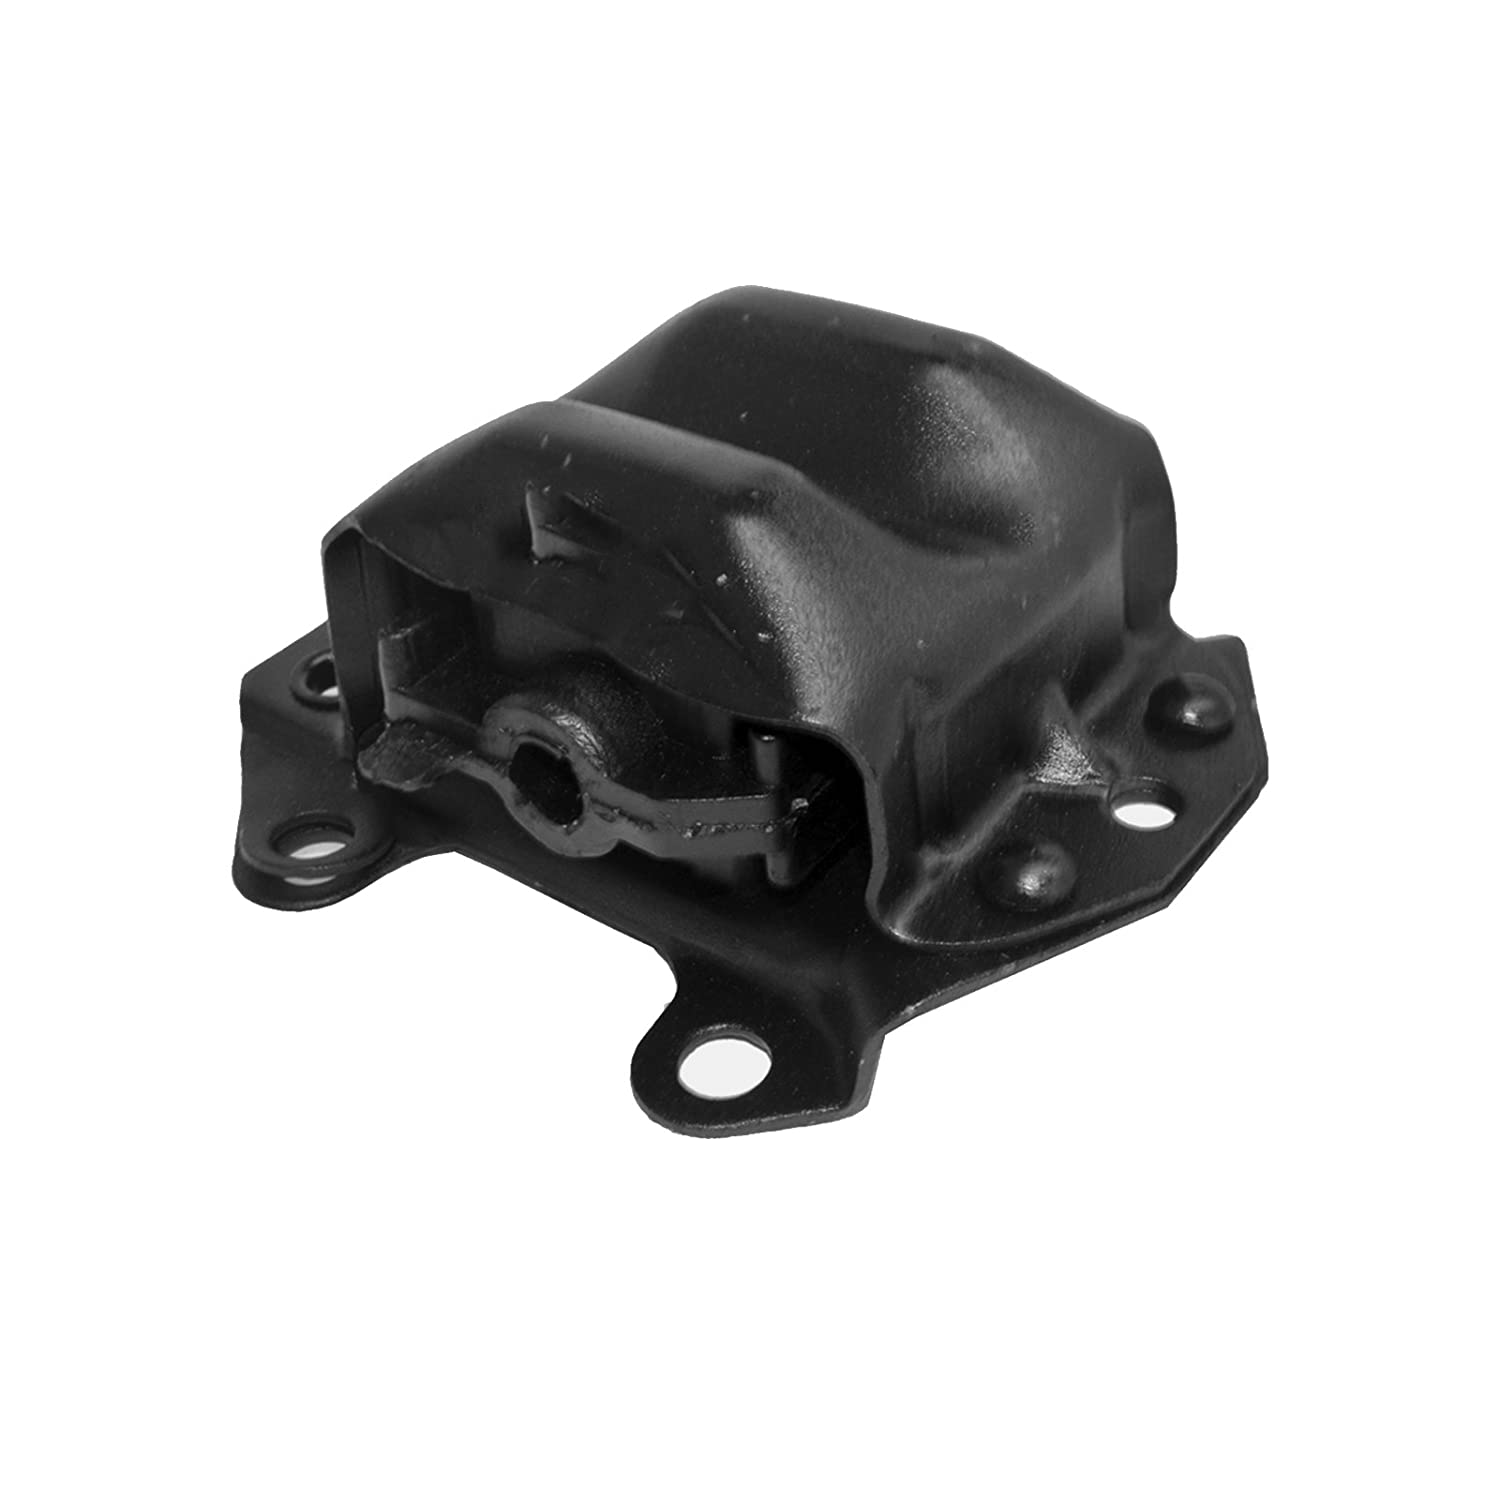 Eagle BHP 3678 Engine Motor Mount Chevrolet Camaro Pontiac Firebird 5.7L Front Right or Left